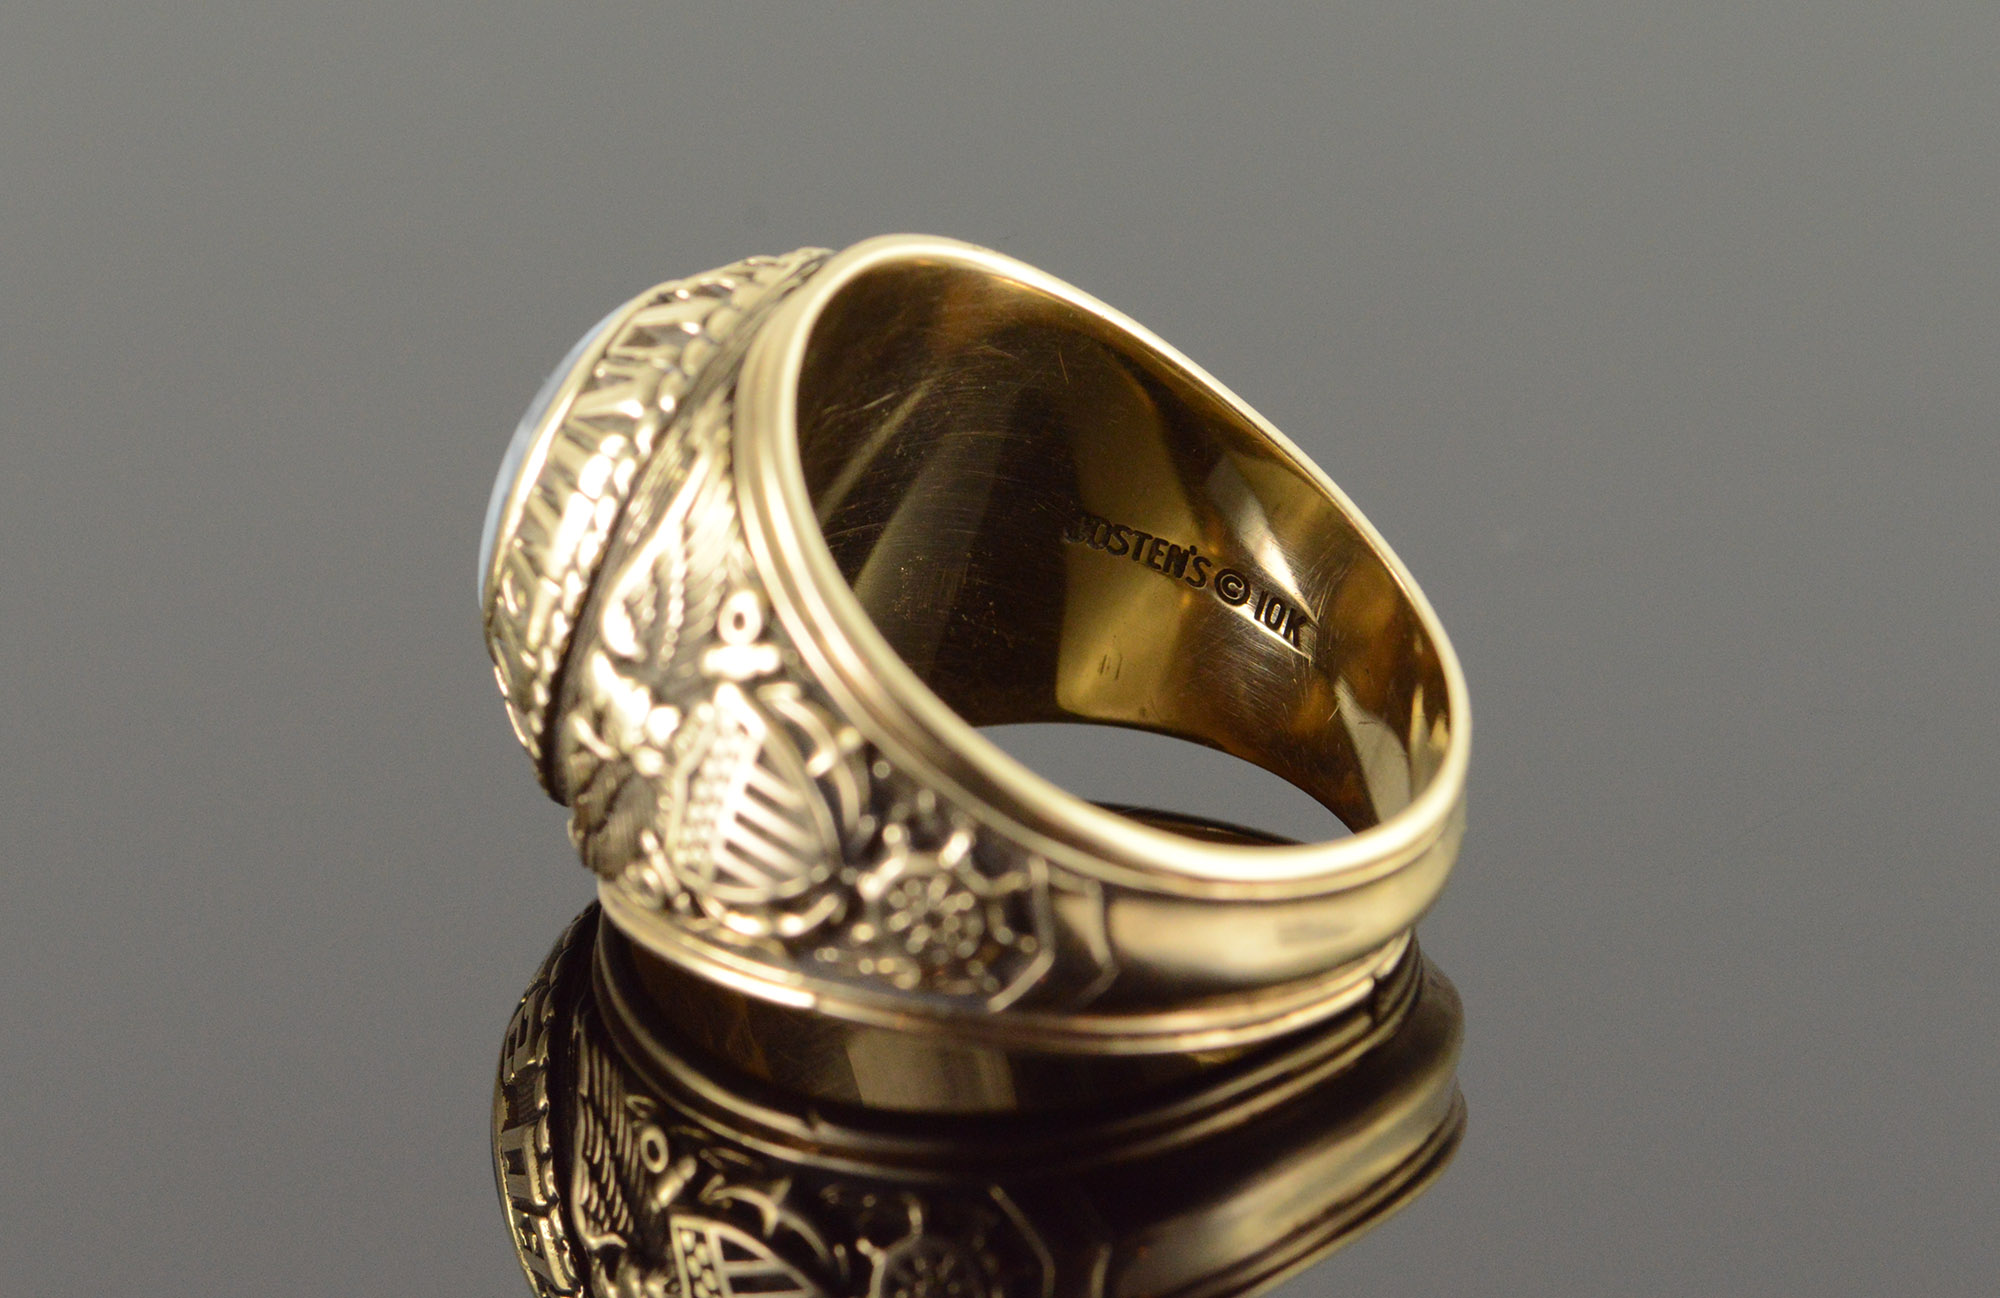 10k 16 7g United States Navy Class Graduate Military Naval Academy Yellow Gold Ring Size 11 25